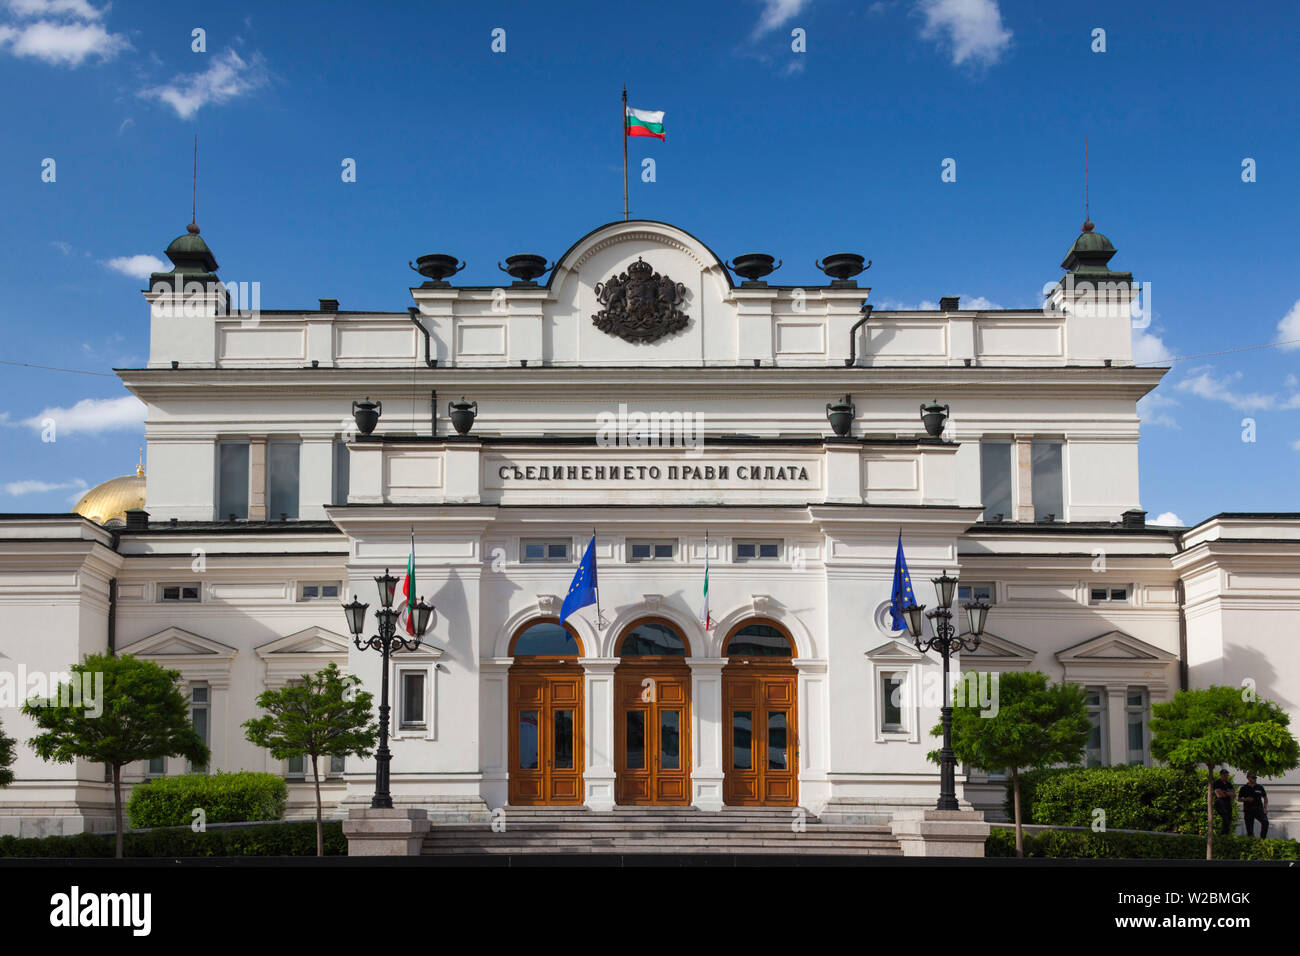 Bulgaria, Sofia, Ploshtad Narodno Sabranie Square, National Assembly Building - Stock Image